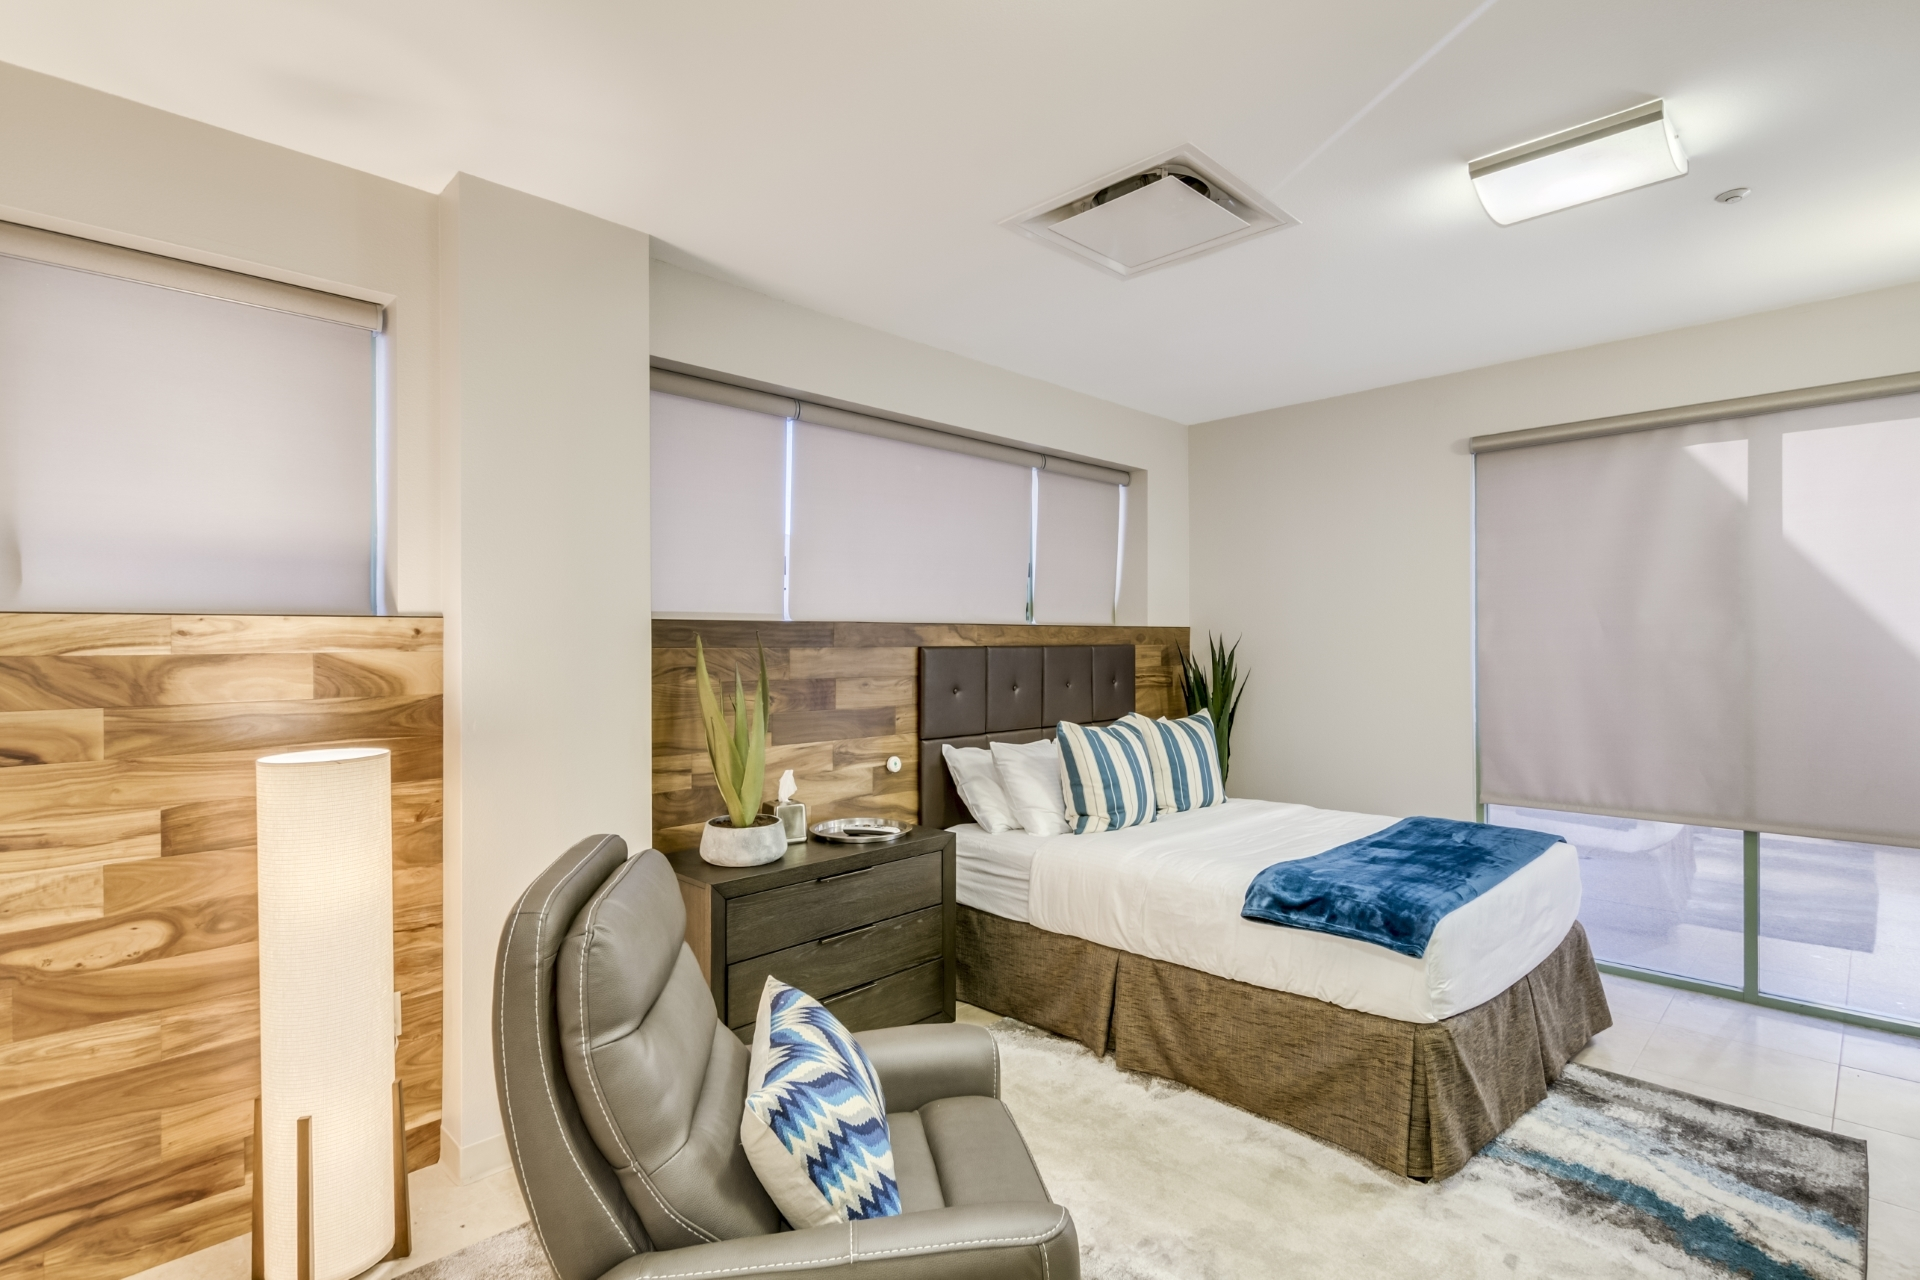 executive suite - private bedroom and bathroom at scottsdale drug and alcohol detox